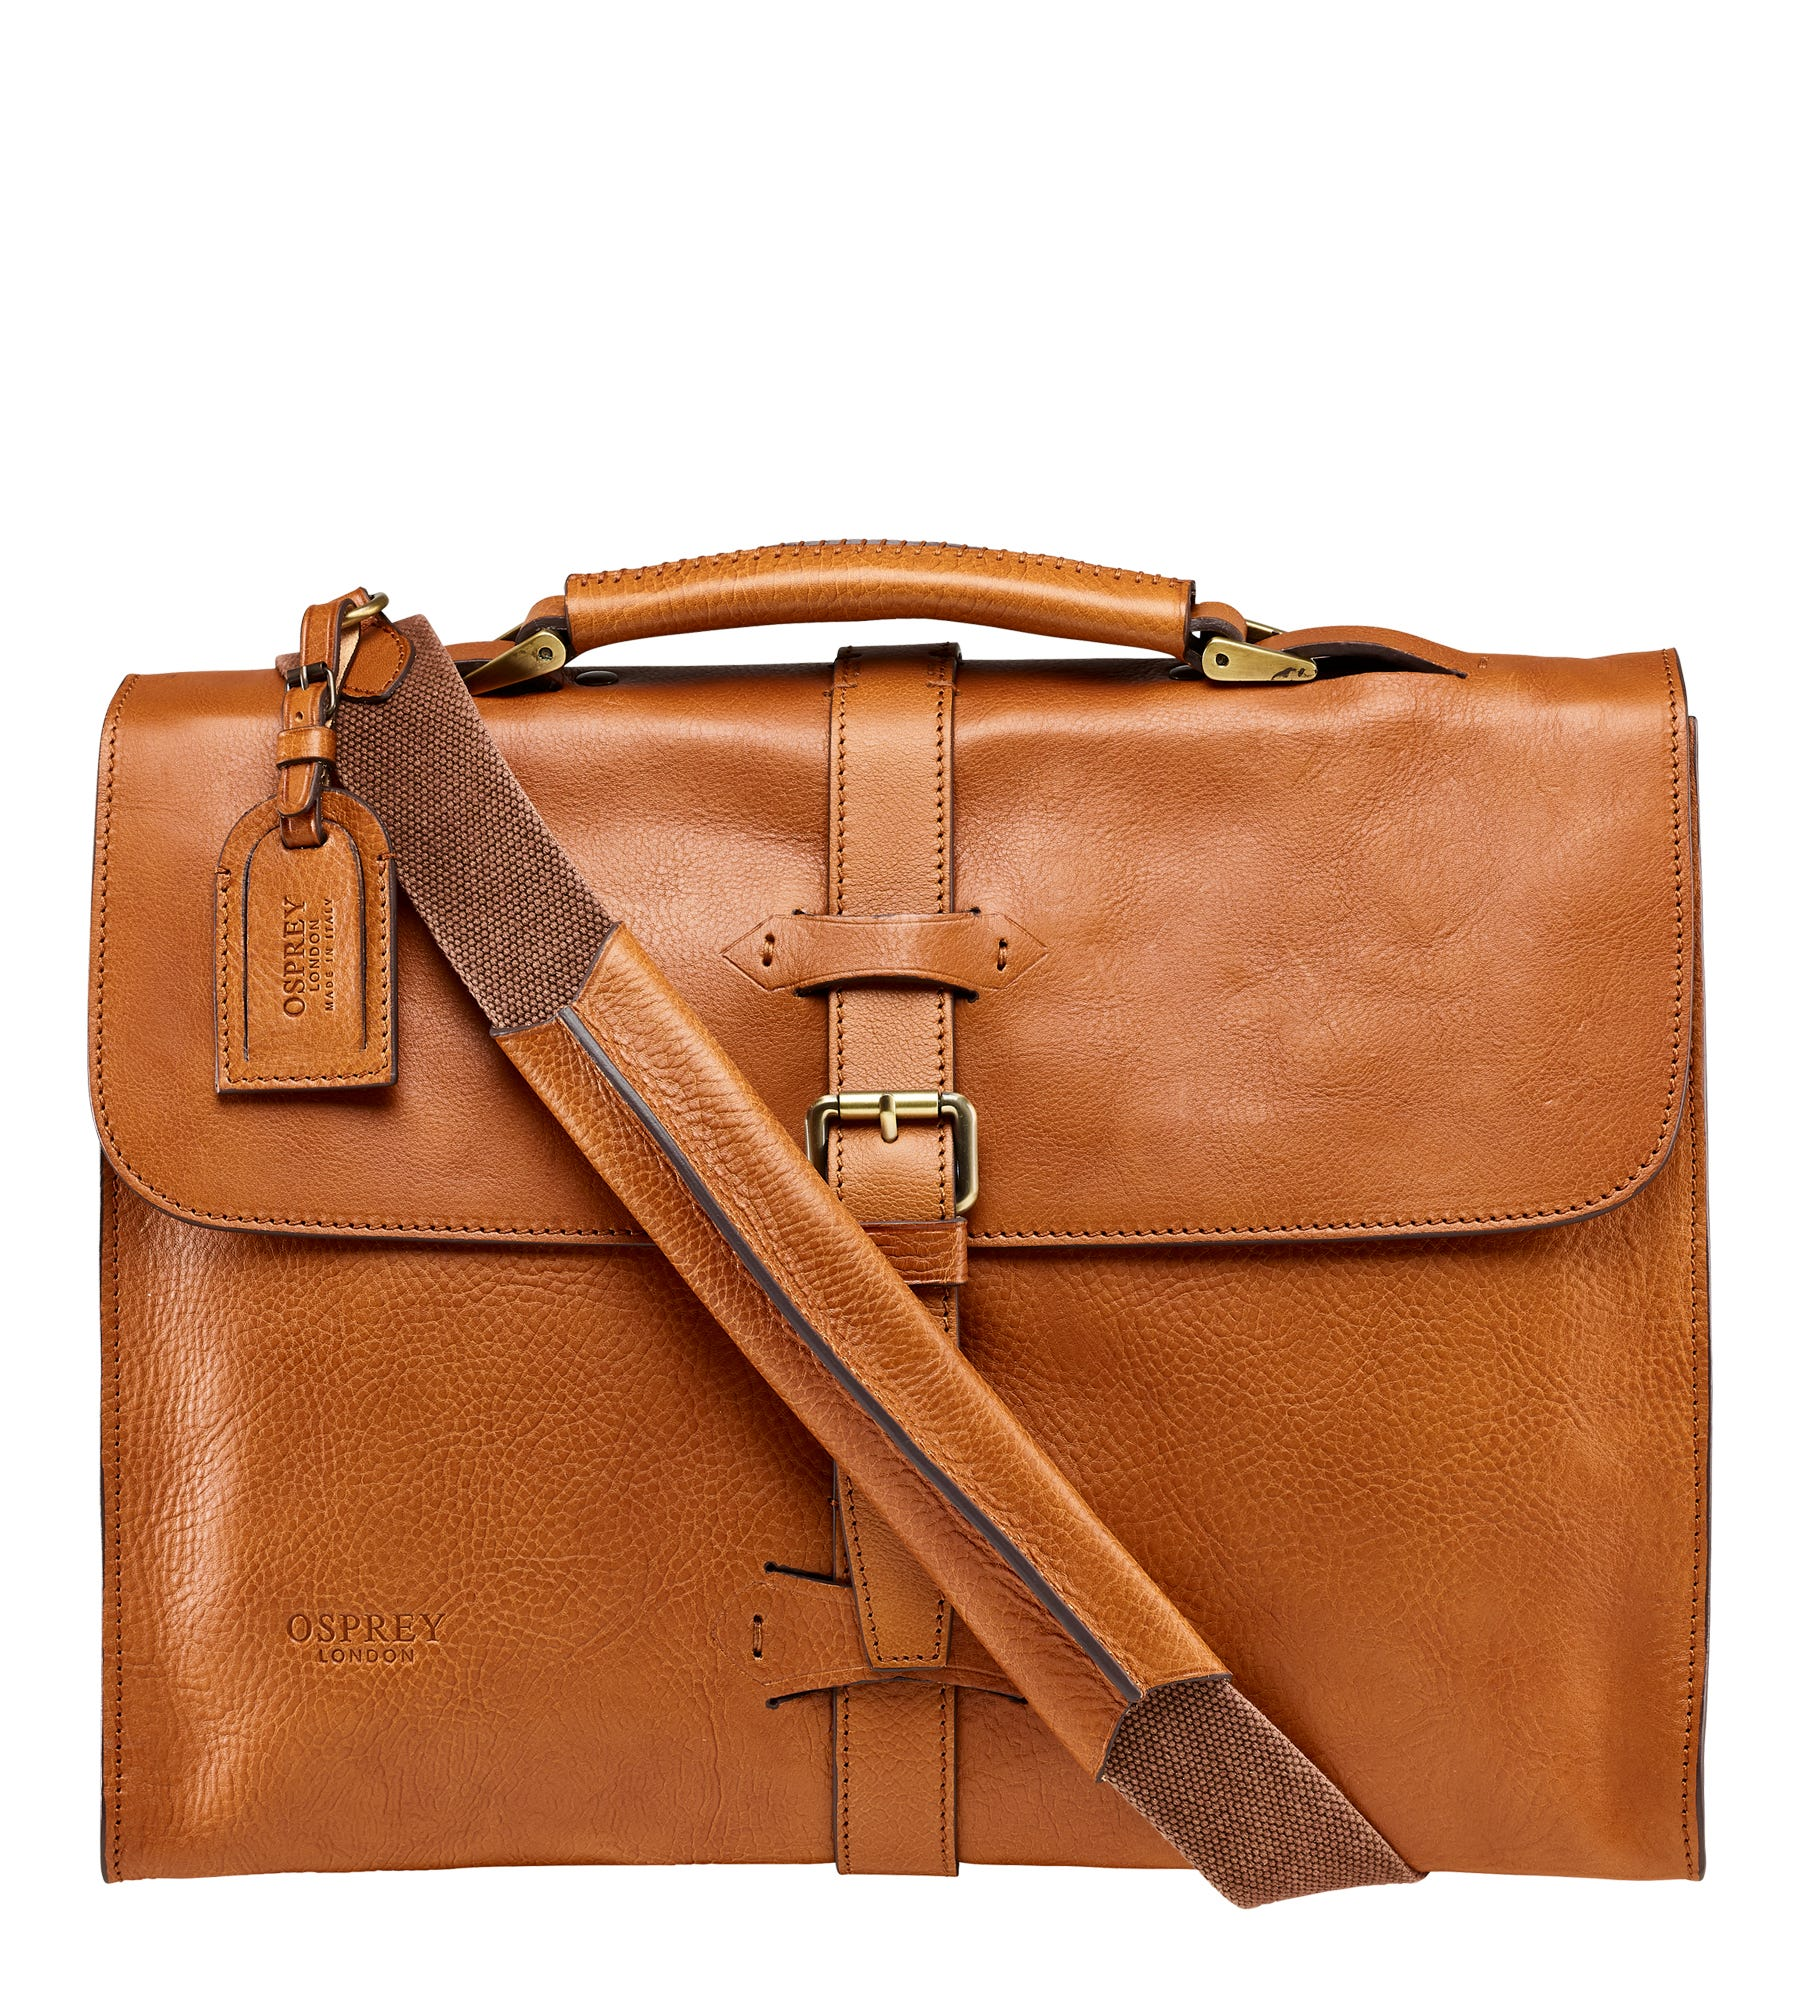 An image of The Knighton Italian Leather Briefcase